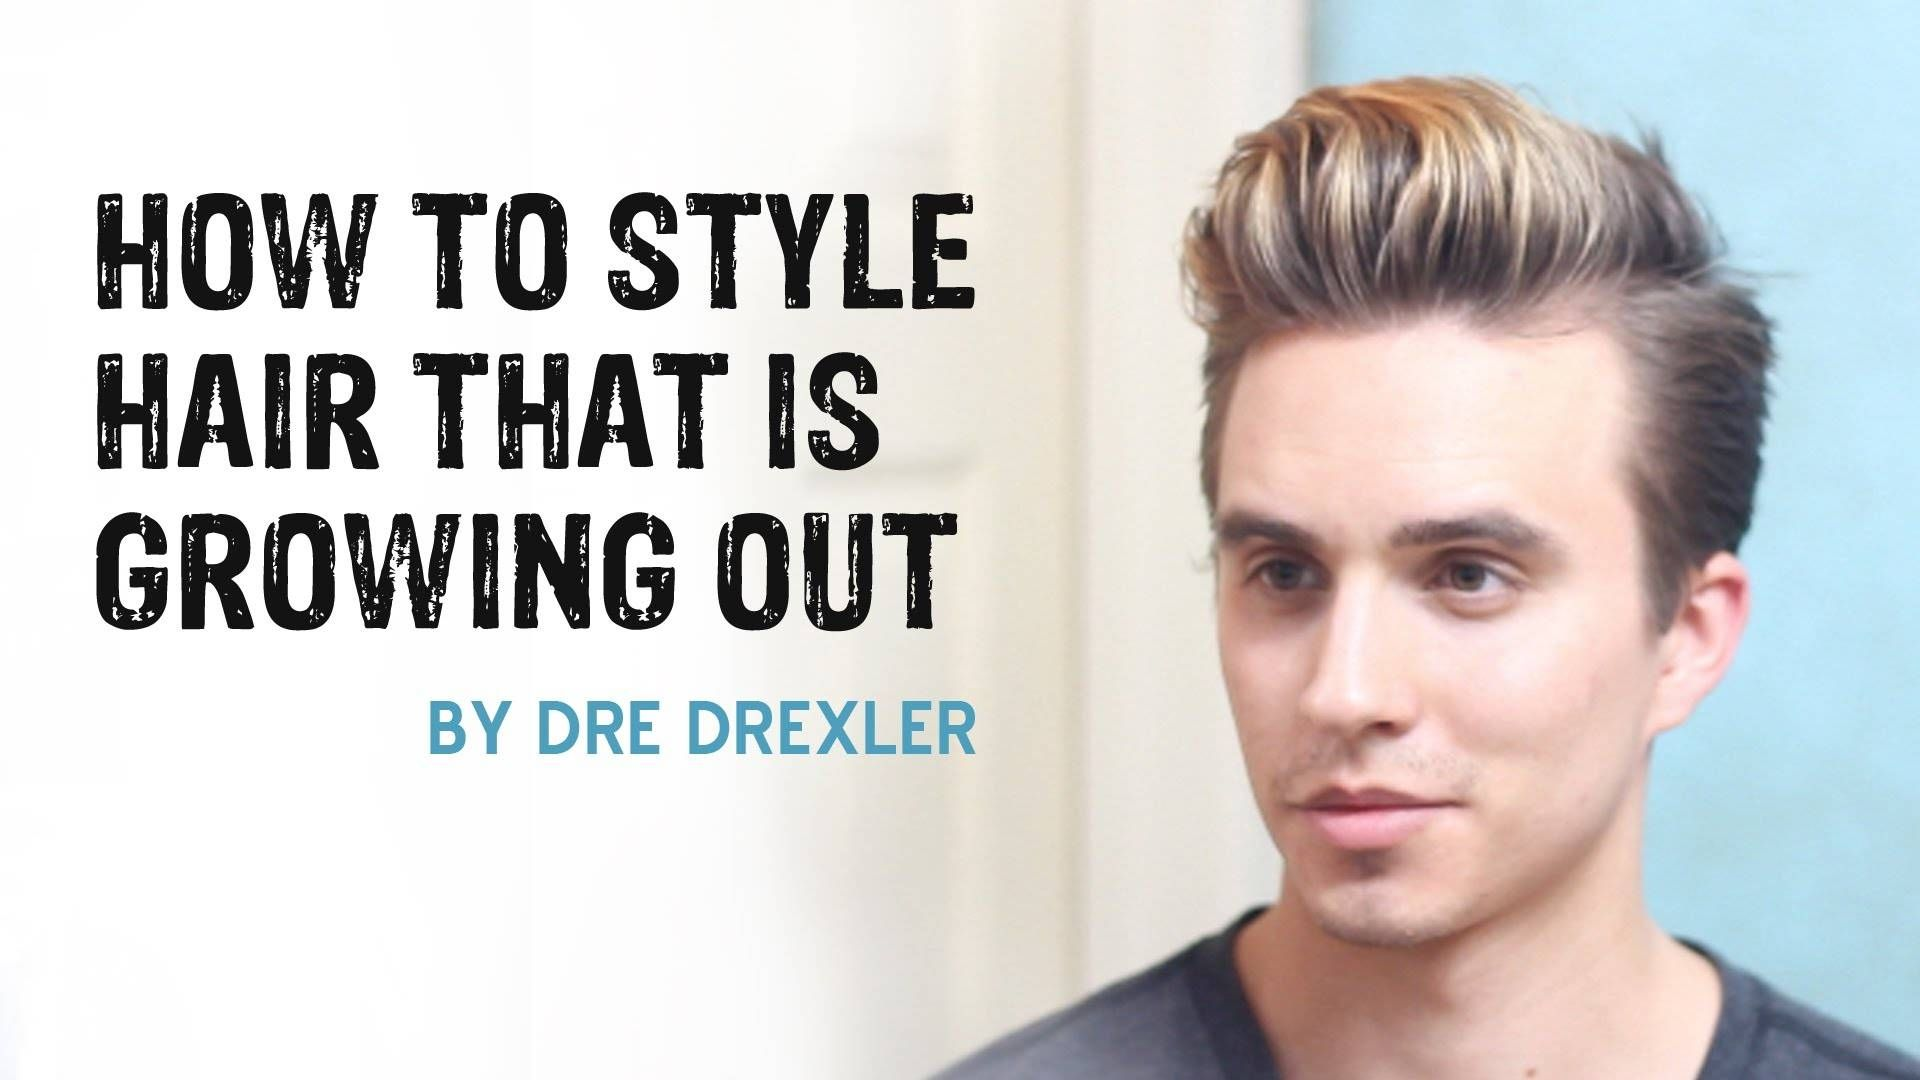 Top How To Style Your Hair For An Undercut Growing Out Hair Growing Hair Men Growing Your Hair Out